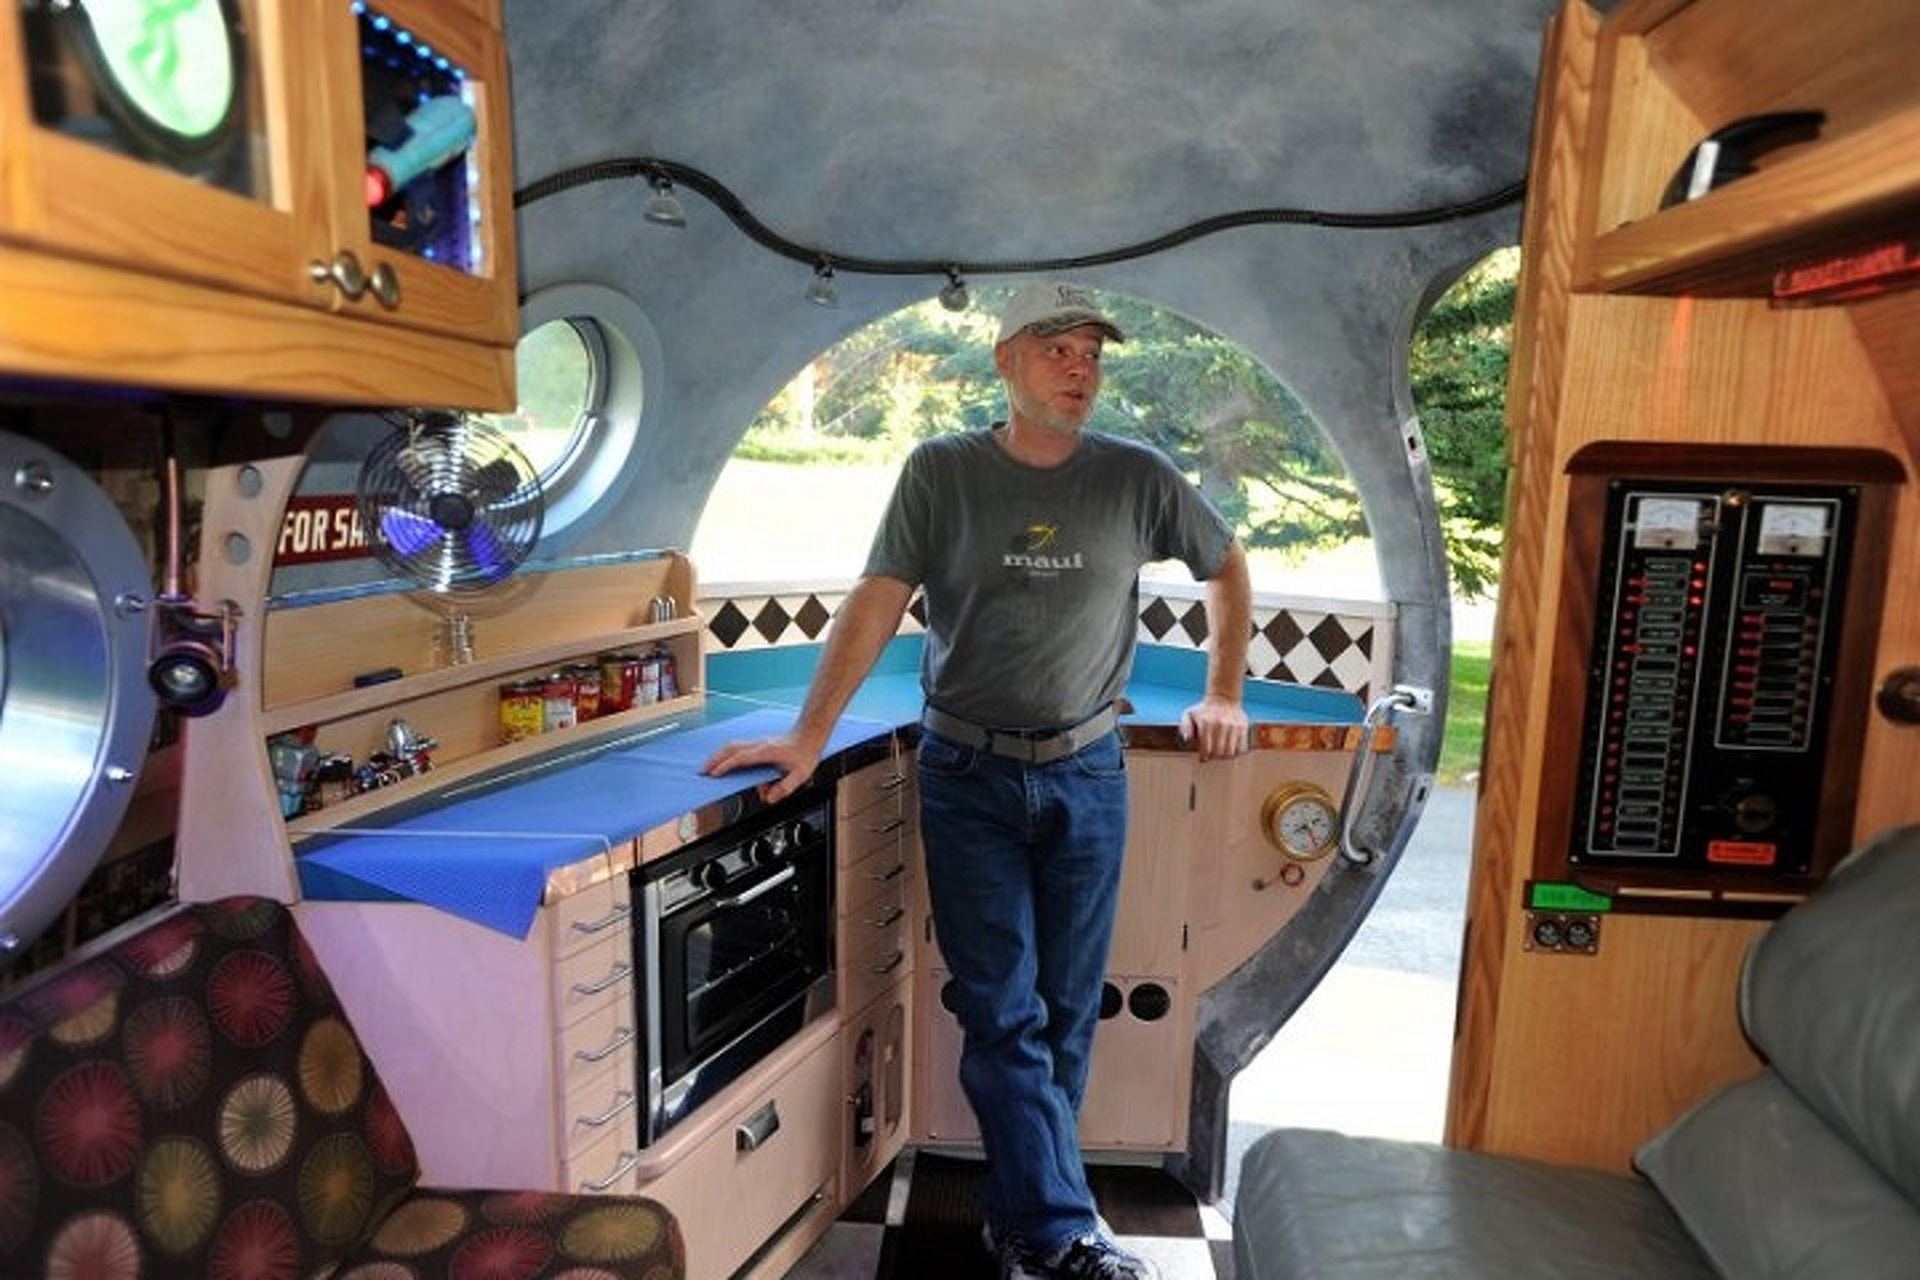 Retro-Tastic Atomic Camper is a Slice of Pure Awesome